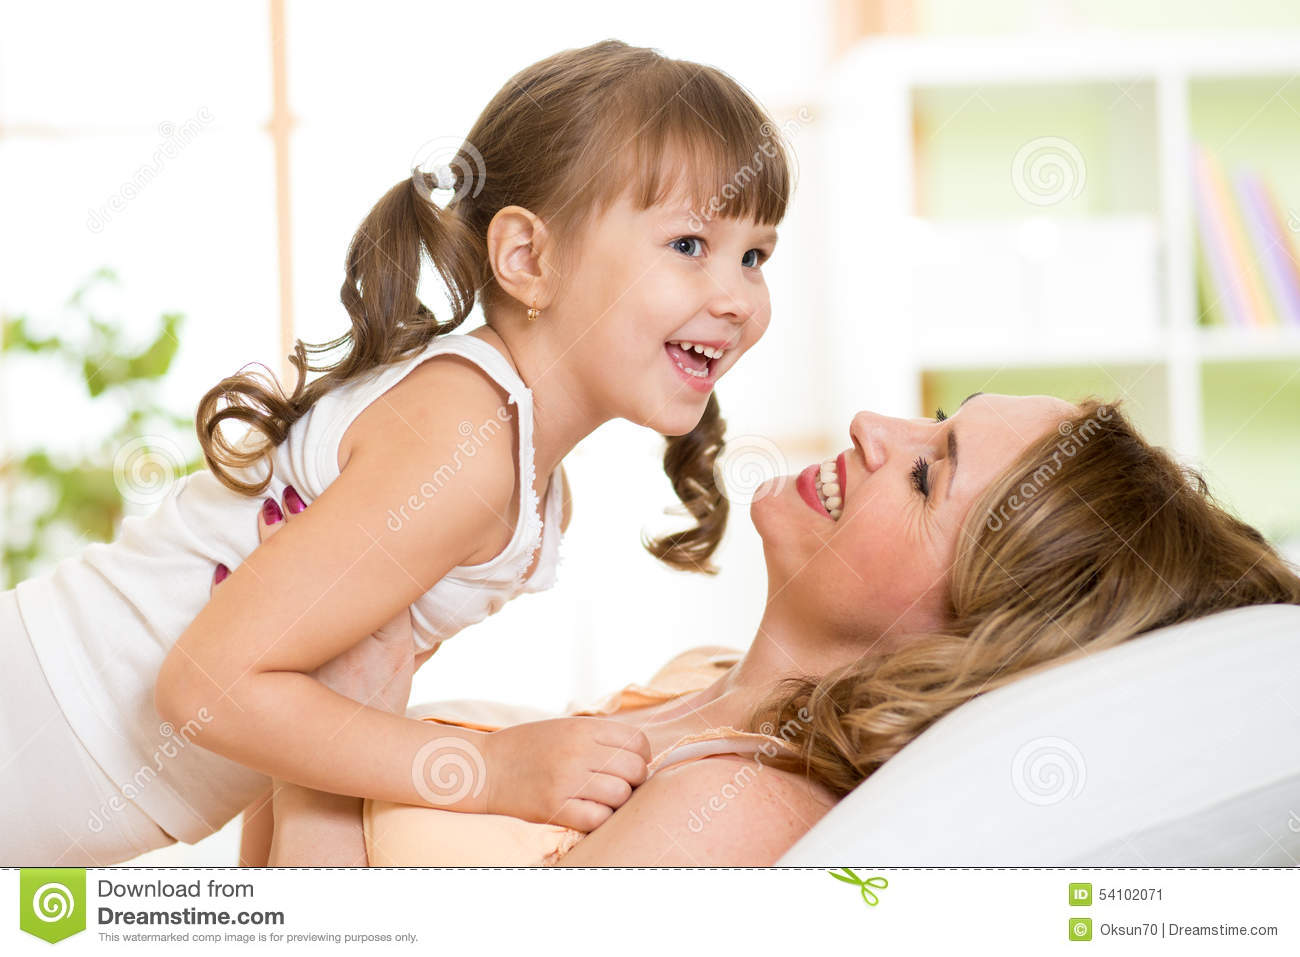 Middle-aged woman with her daughter child play and